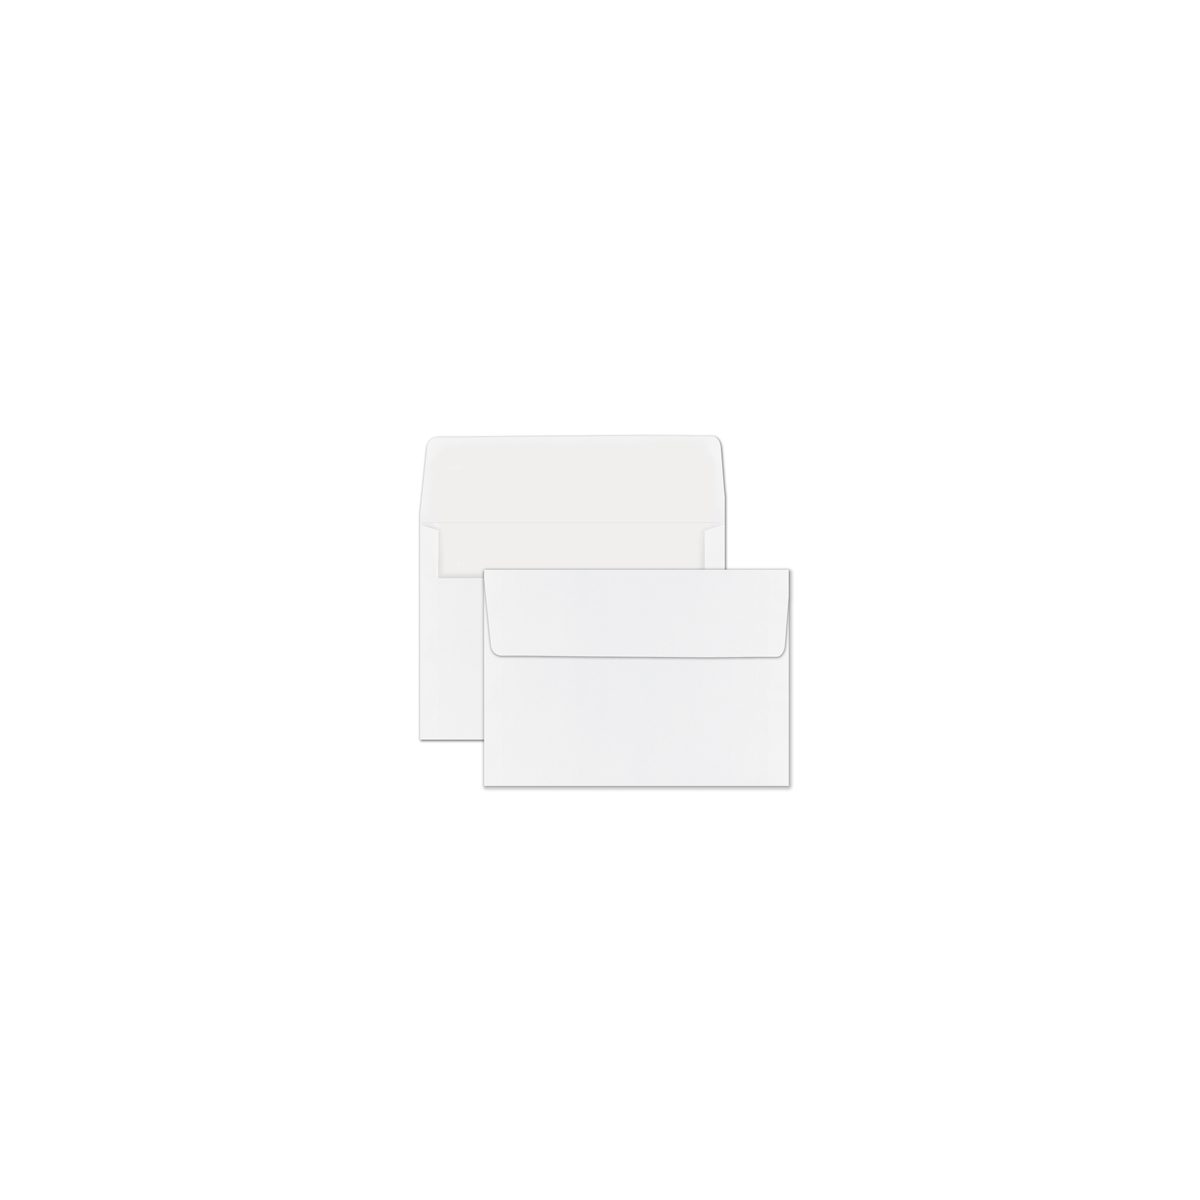 Unlined White Recycled Envelope - Blank